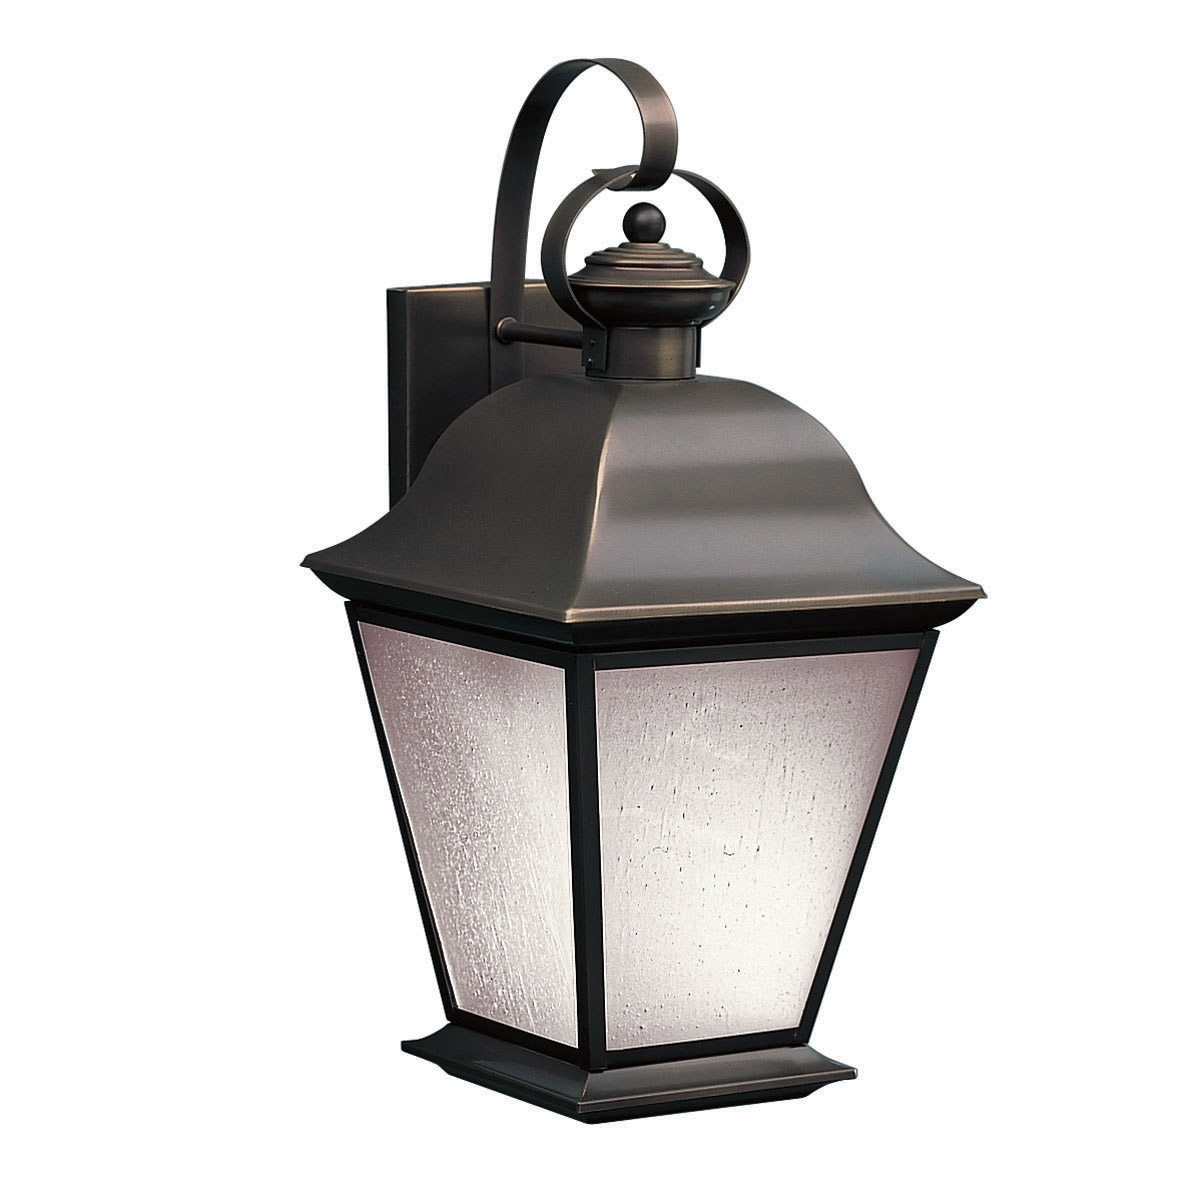 Outdoor Lamp Lanterns Within Most Popular Wall Lights Design: Solar Wall Mounted Outdoor Lights In, Solar (View 14 of 20)